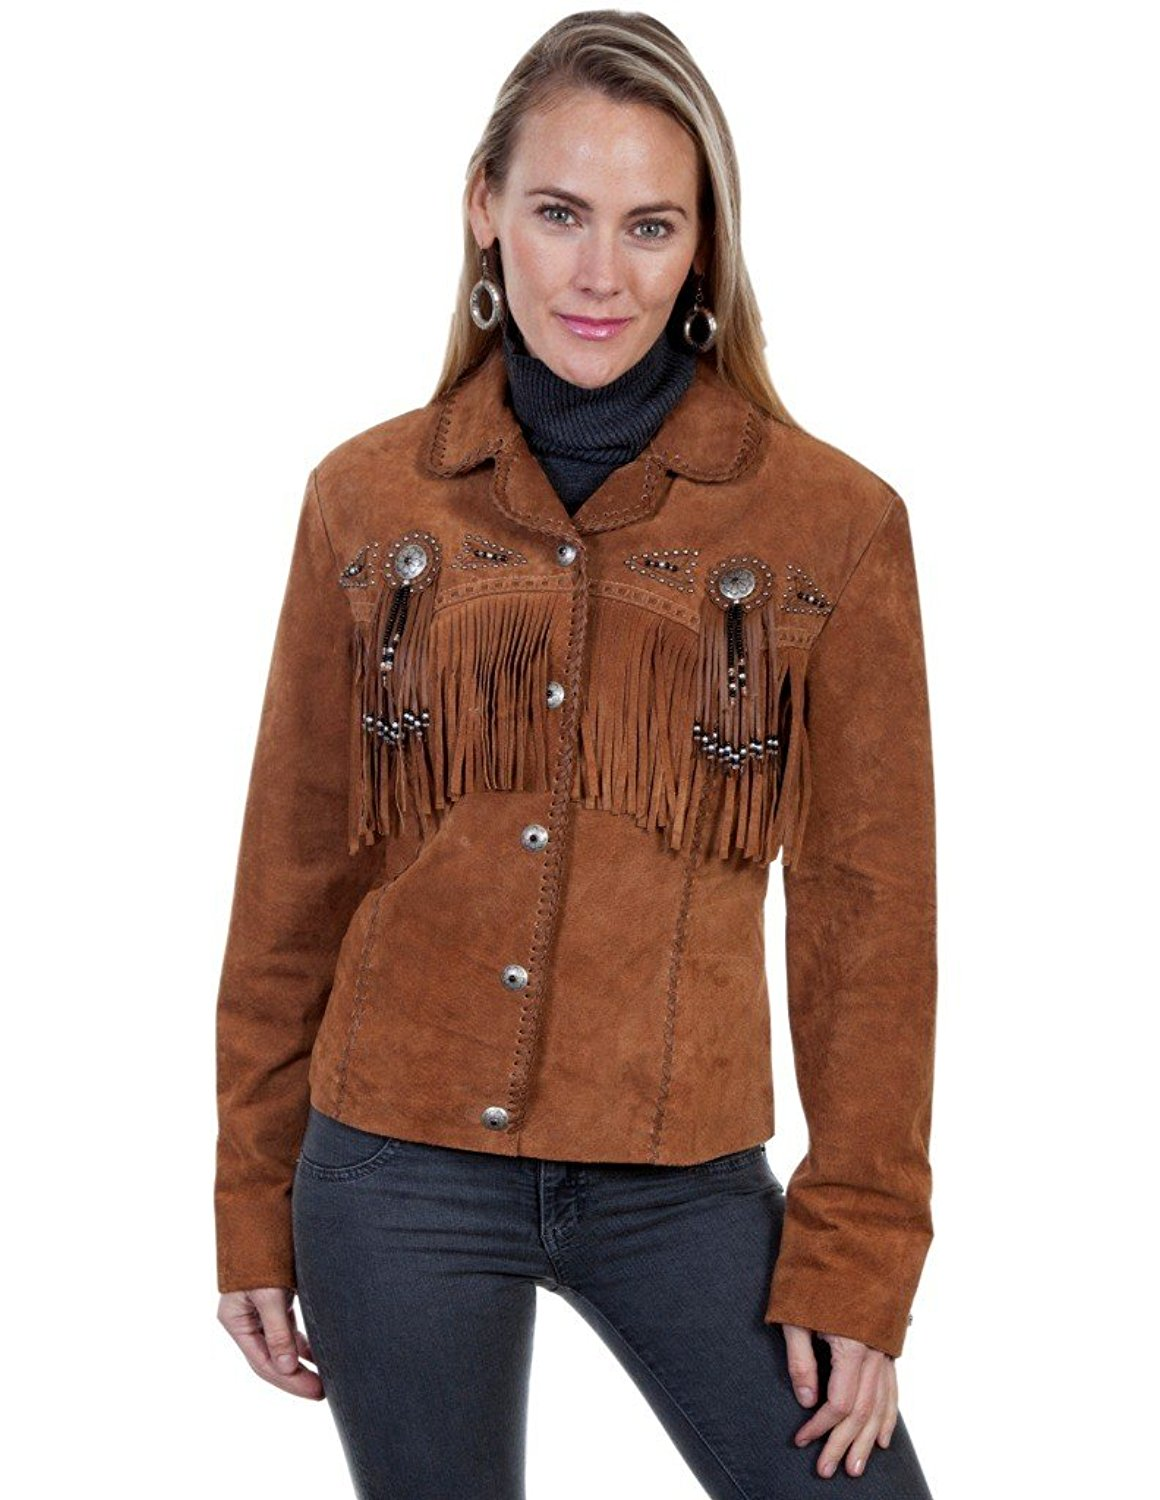 c1b70cce Get Quotations · Scully Western Jacket Womens Leather Fringe 1X Cinnamon  L152